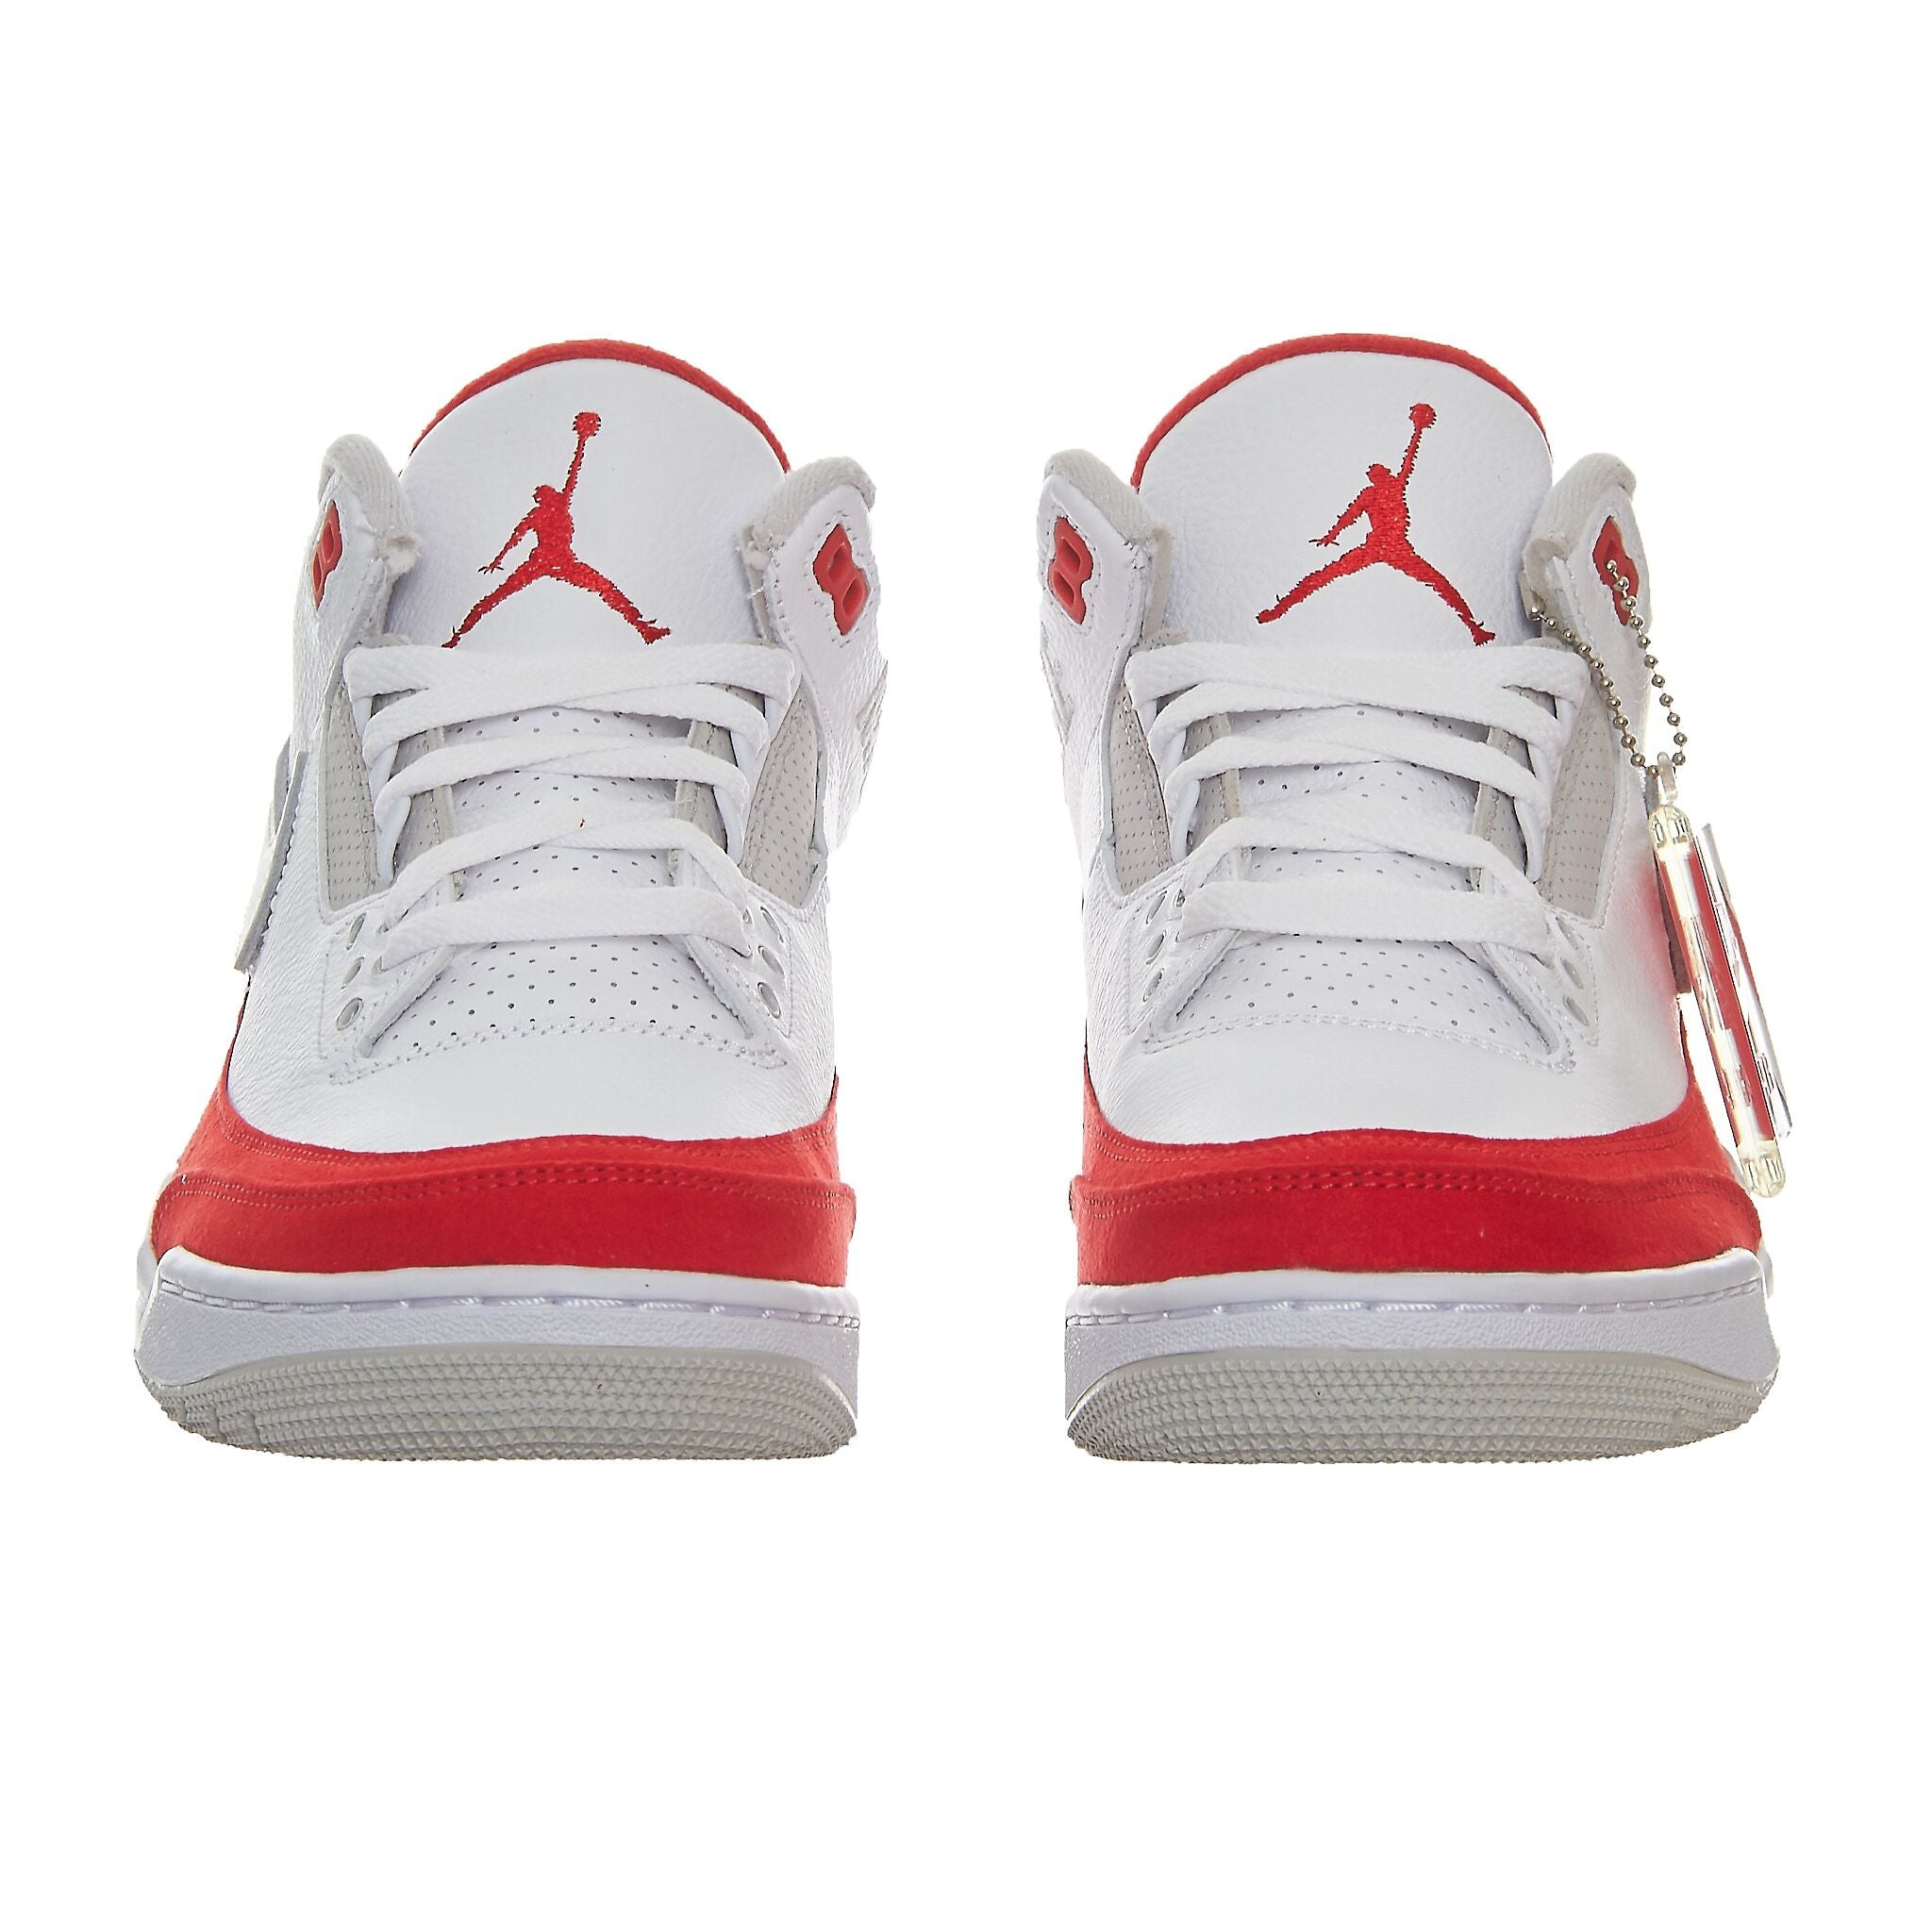 Jordan JORDAN 3 RETRO TH SP